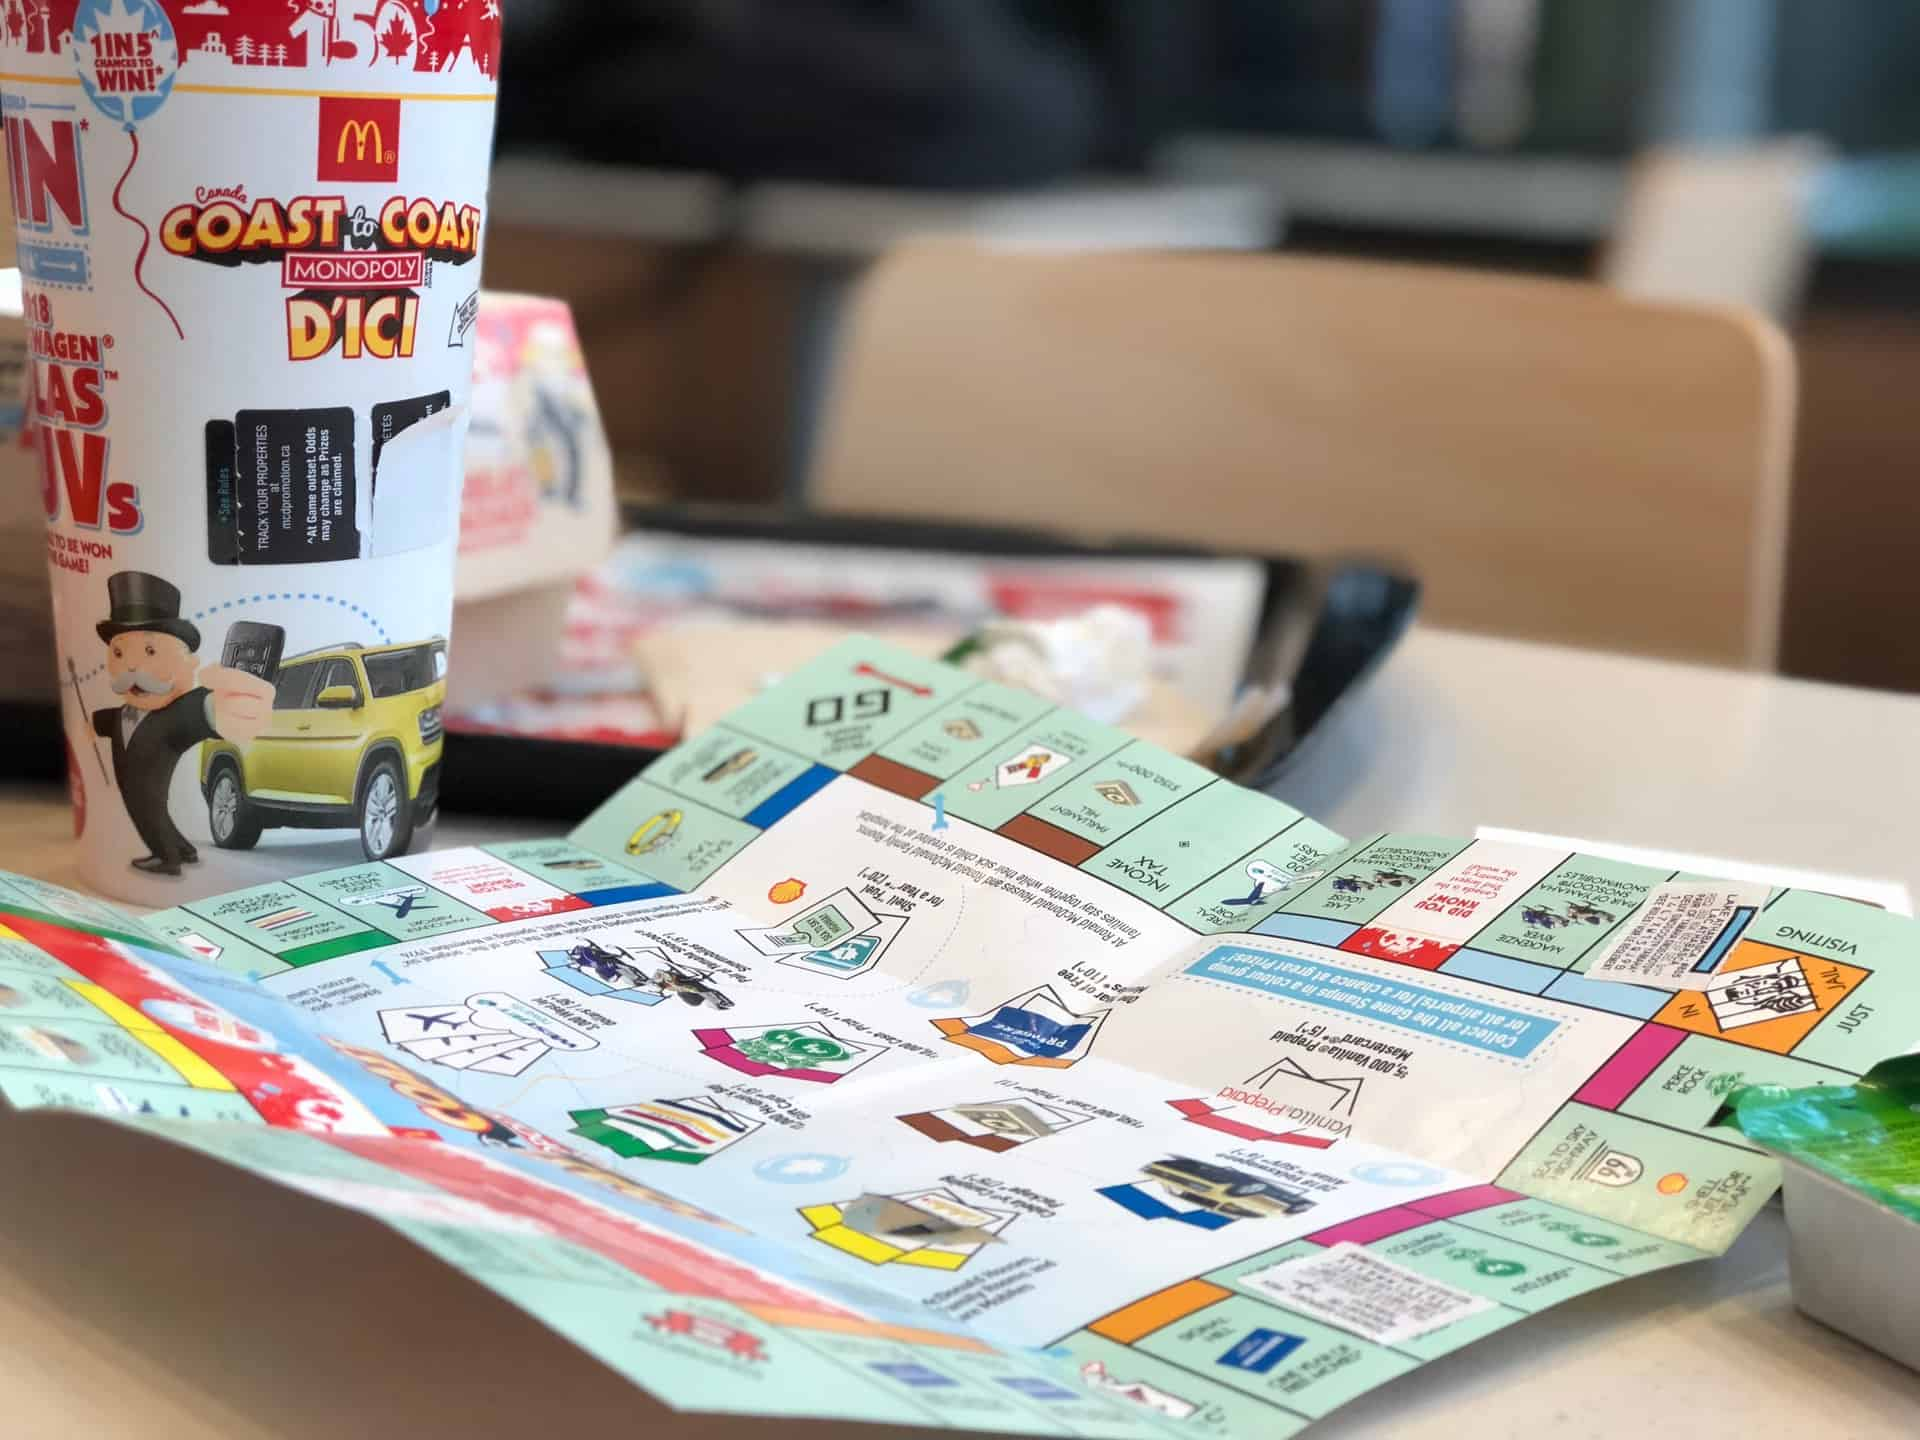 mcdonalds monopoly 2019 rules